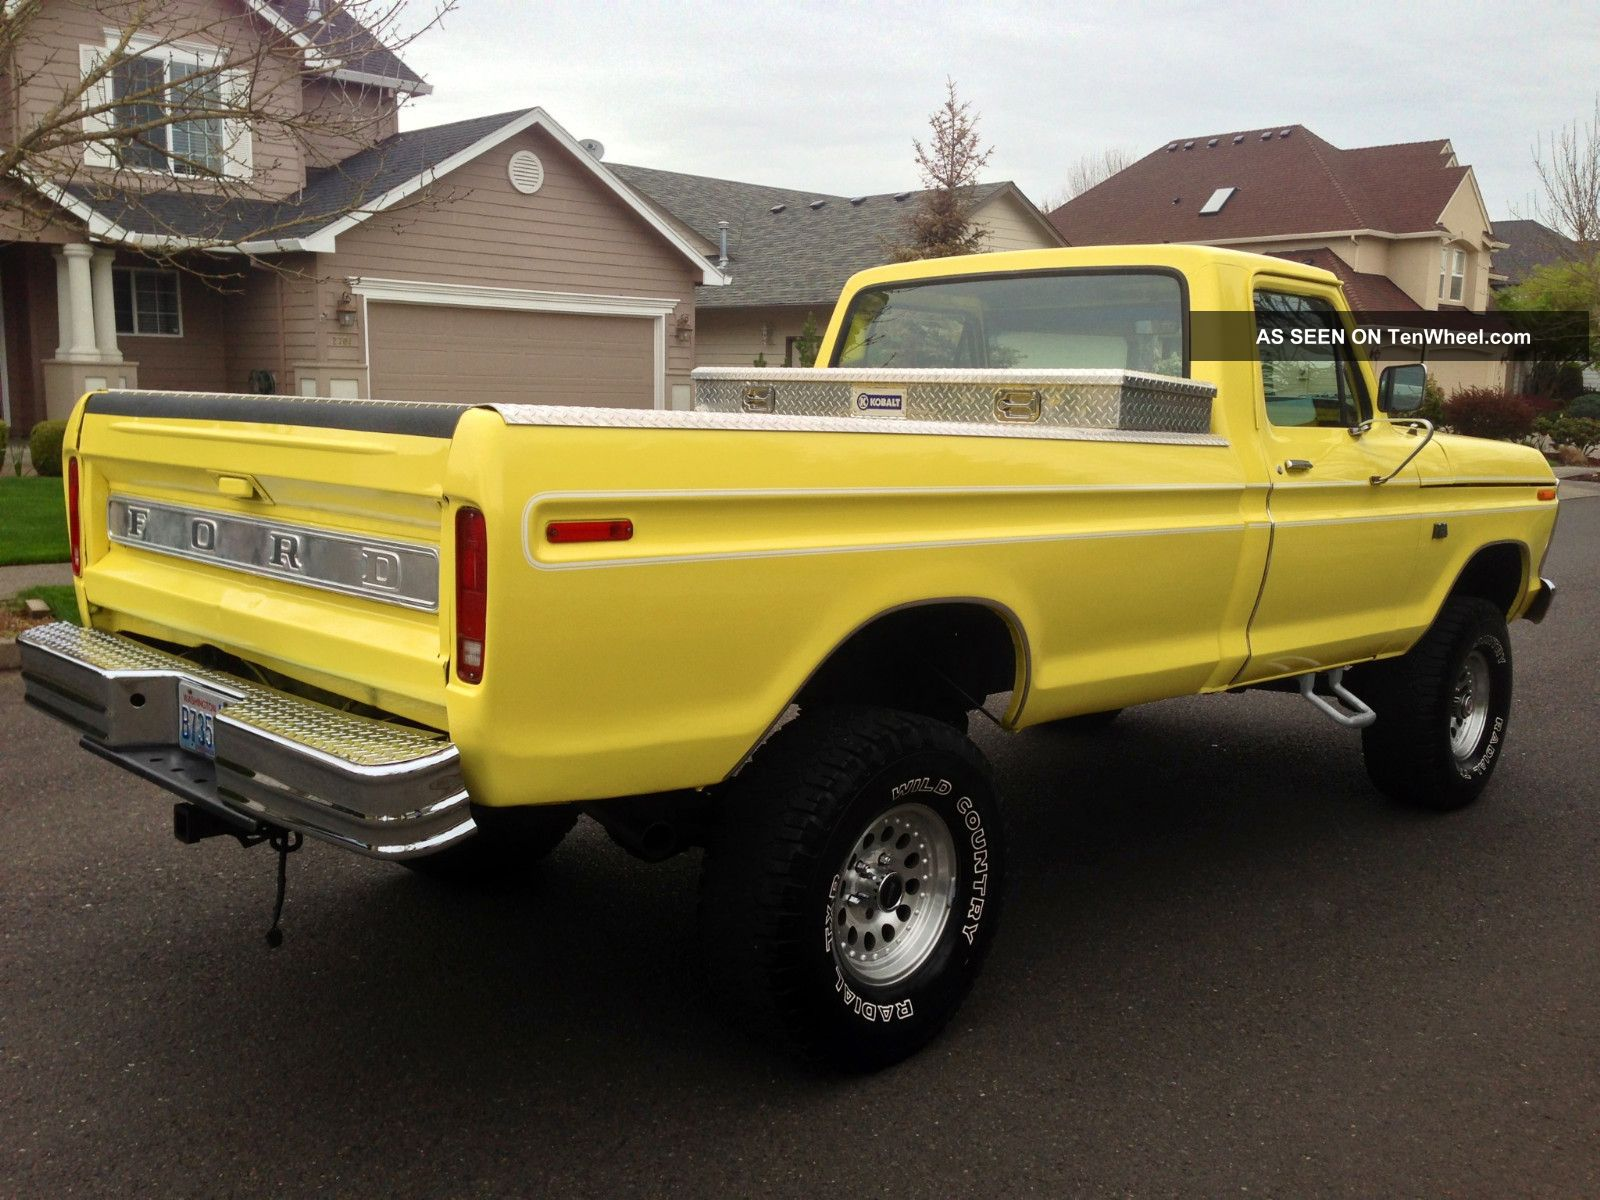 Ford f-150 1975 photo - 5